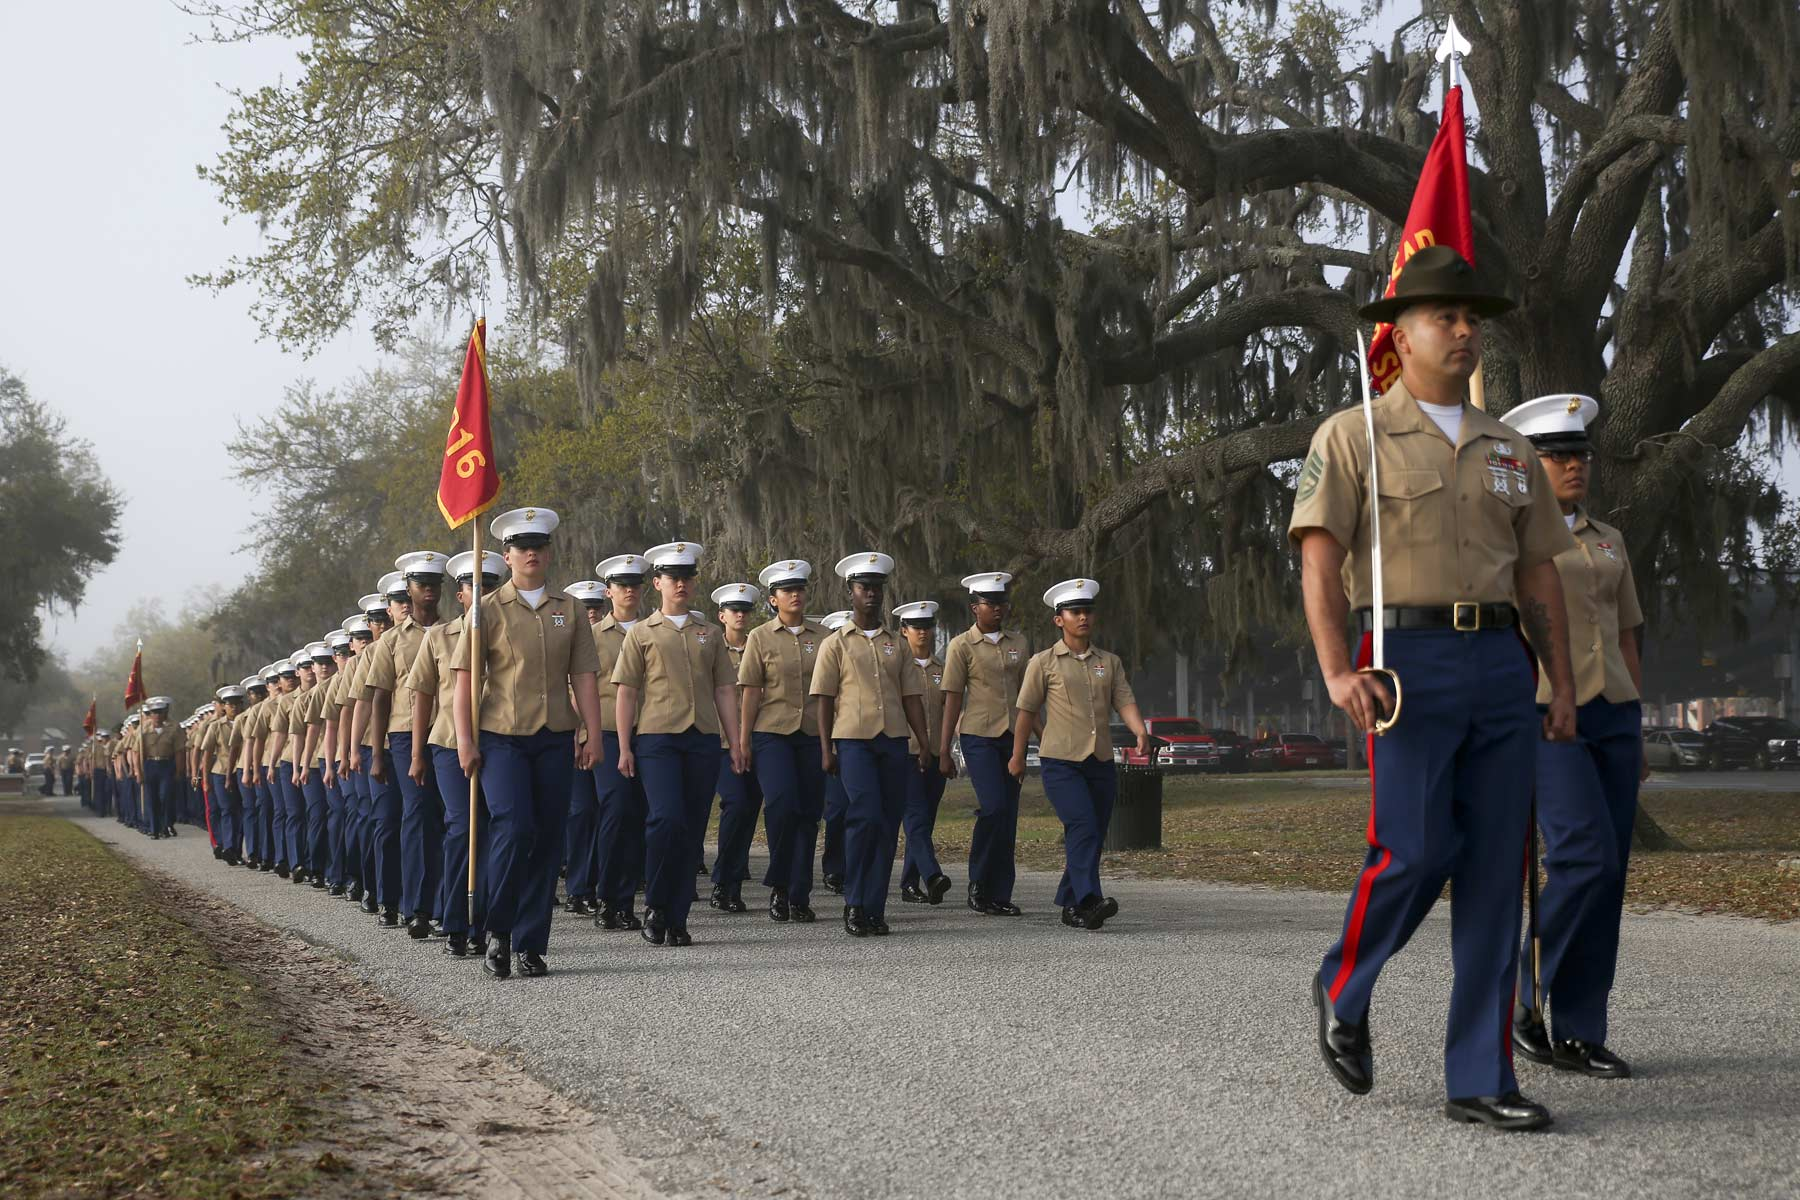 First Marine CoEd Boot Camp Company Graduates at Parris Island  Militarycom